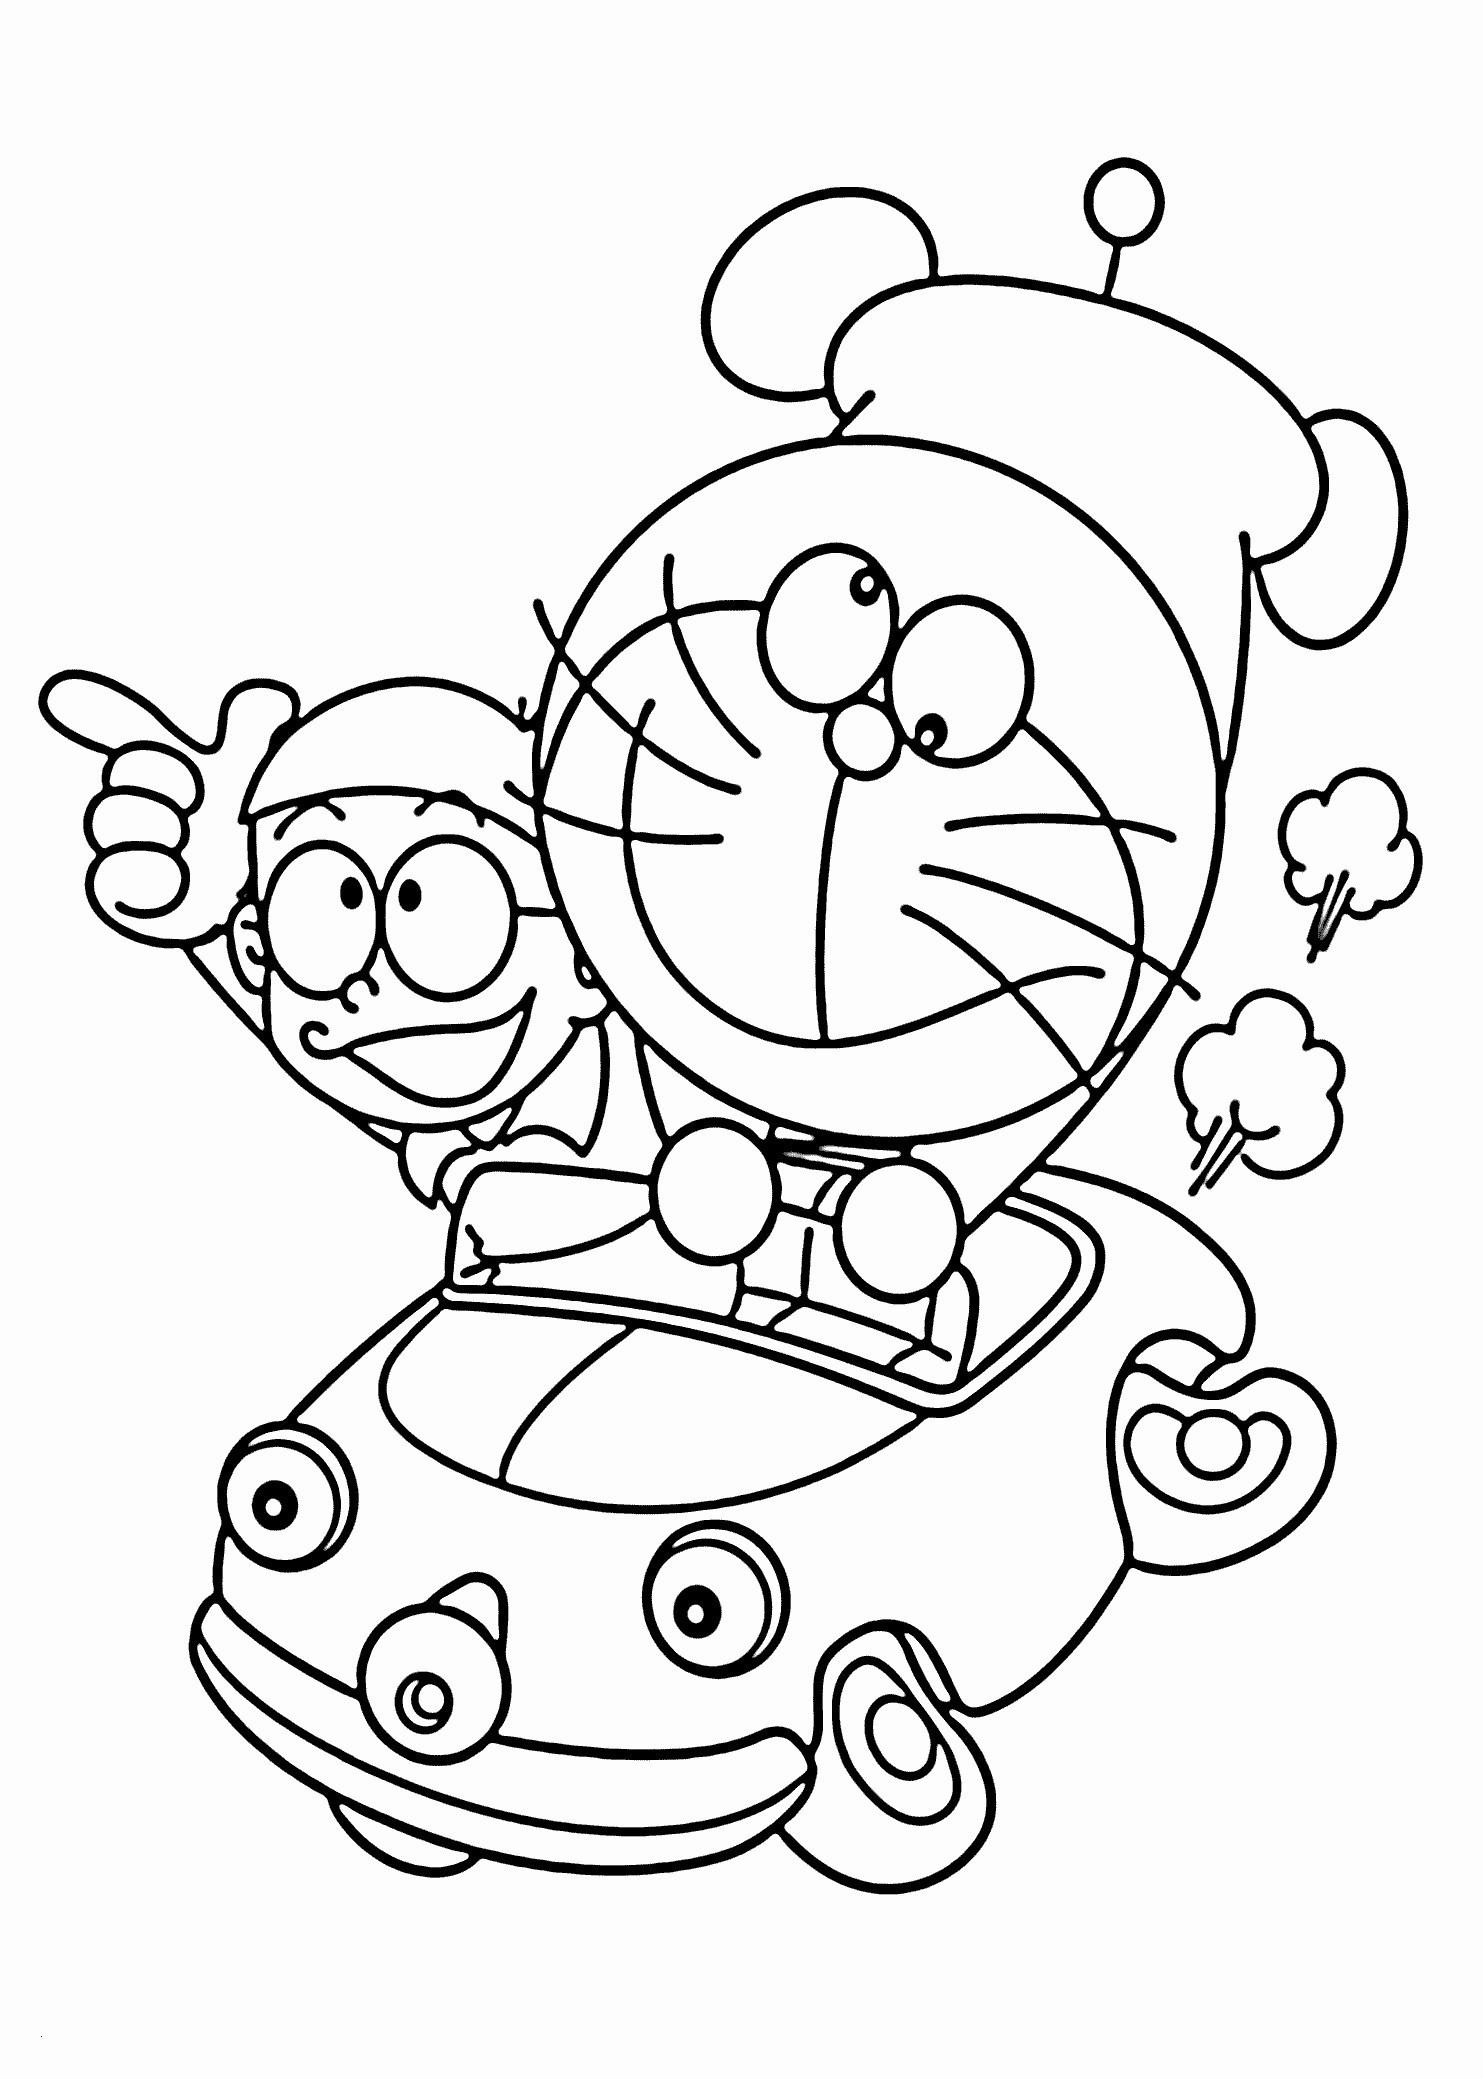 Micky Maus Baby Ausmalbilder Inspirierend Baby Mickey Mouse Coloring Pages 34 Best Minnie Mouse Printable Stock